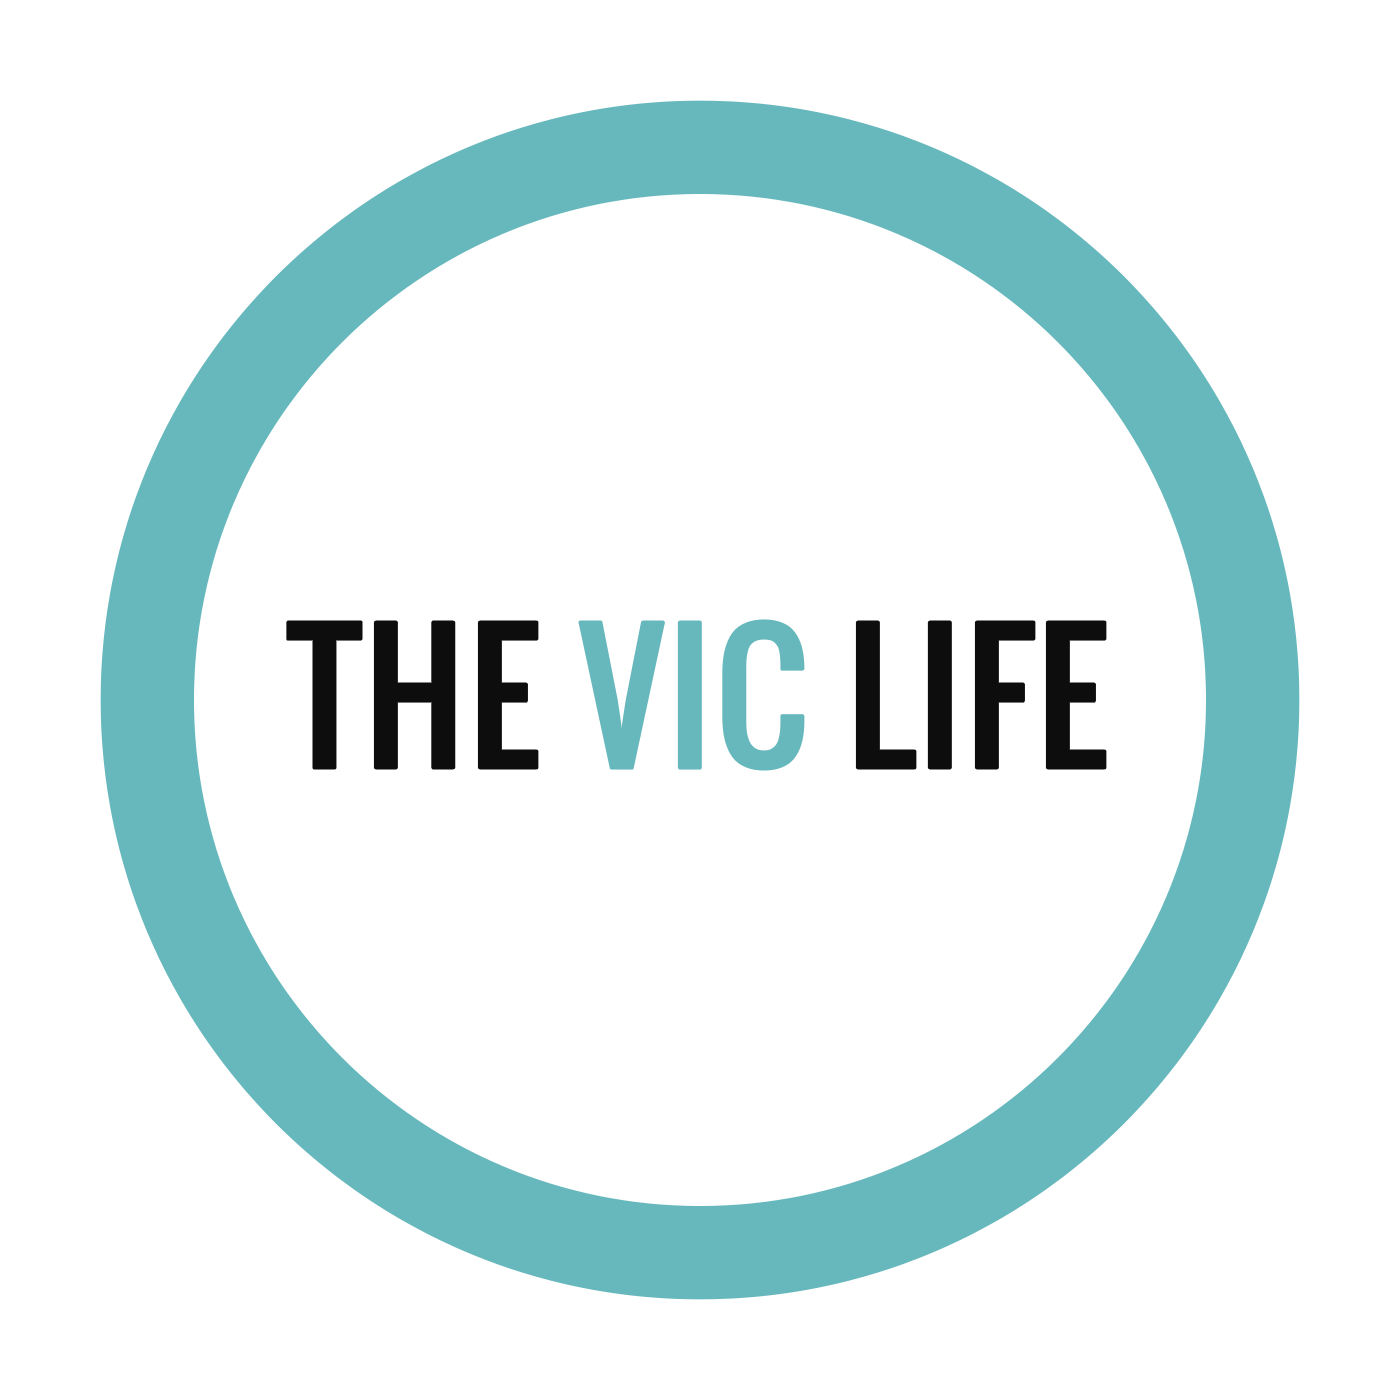 The Vic Life